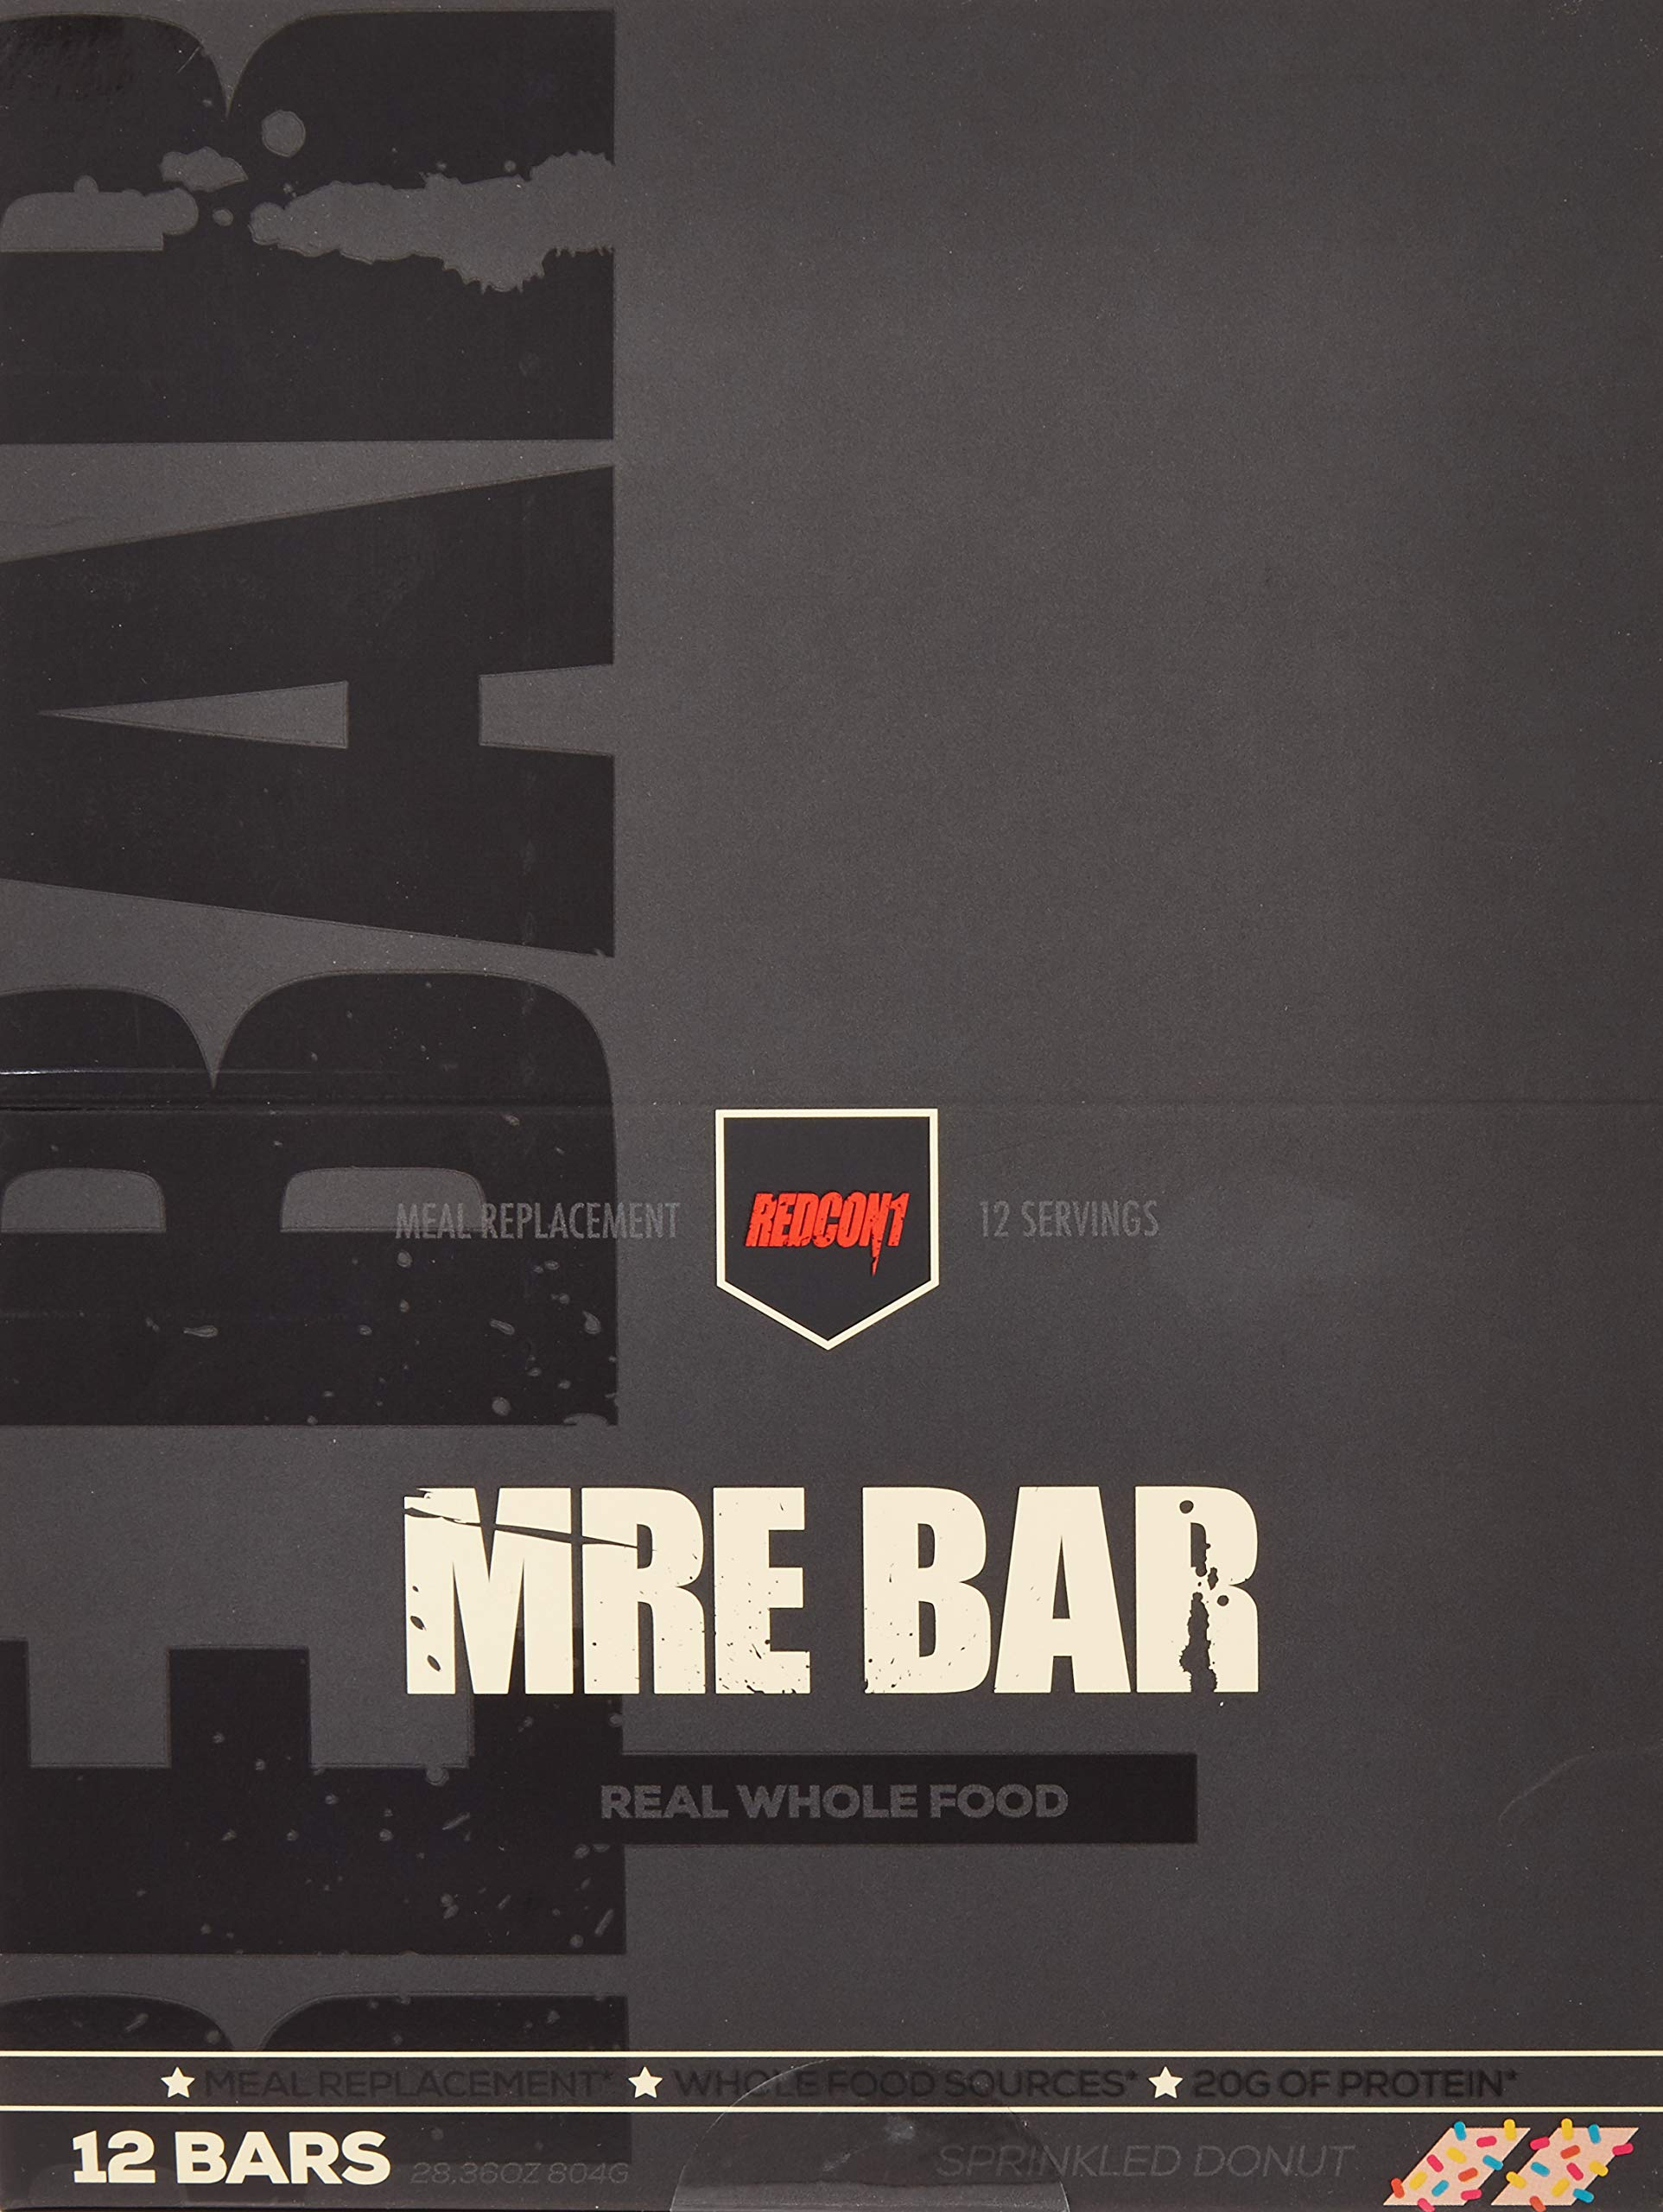 MRE Bar - Meal Replacement Bar (1 Box / 12 Bars) Sprinkled Donut